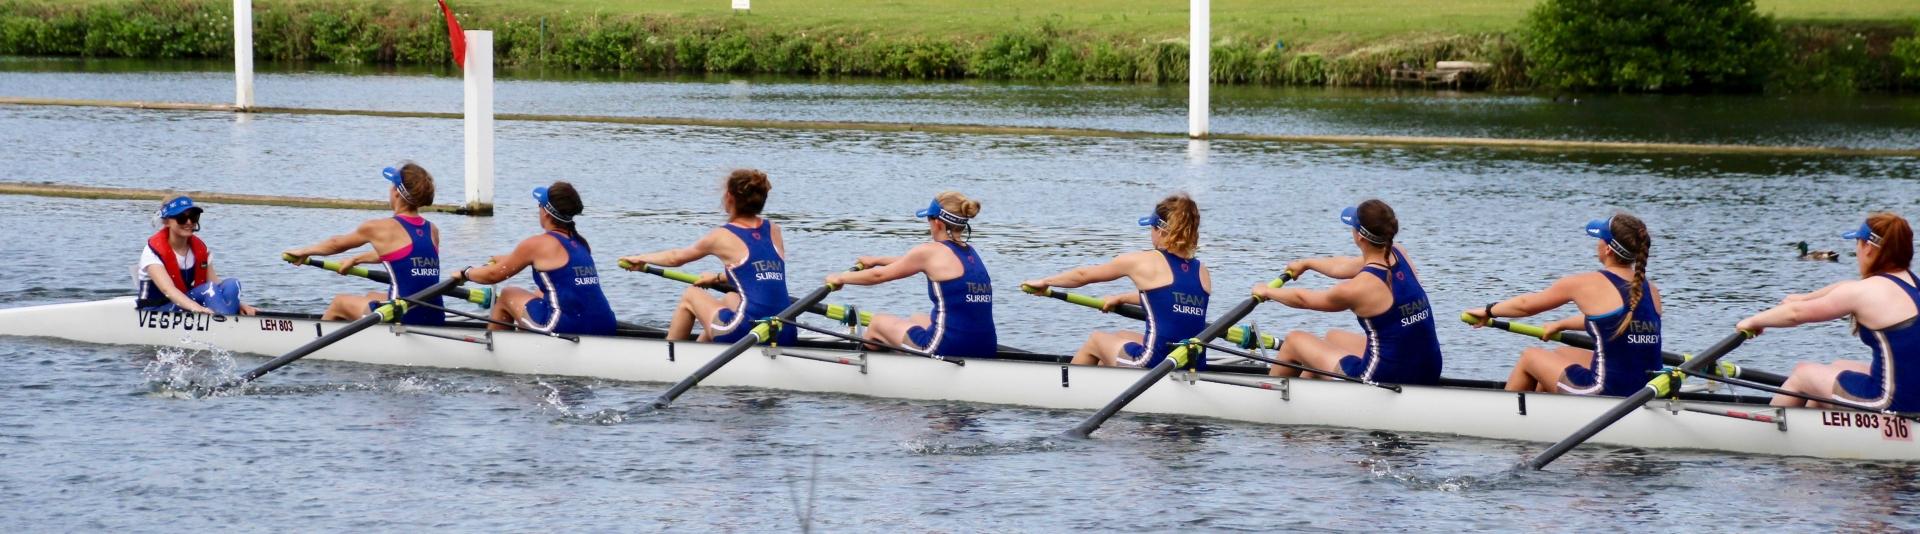 USBC 1 - University of Surrey Boat Club focussing on performance in 2018